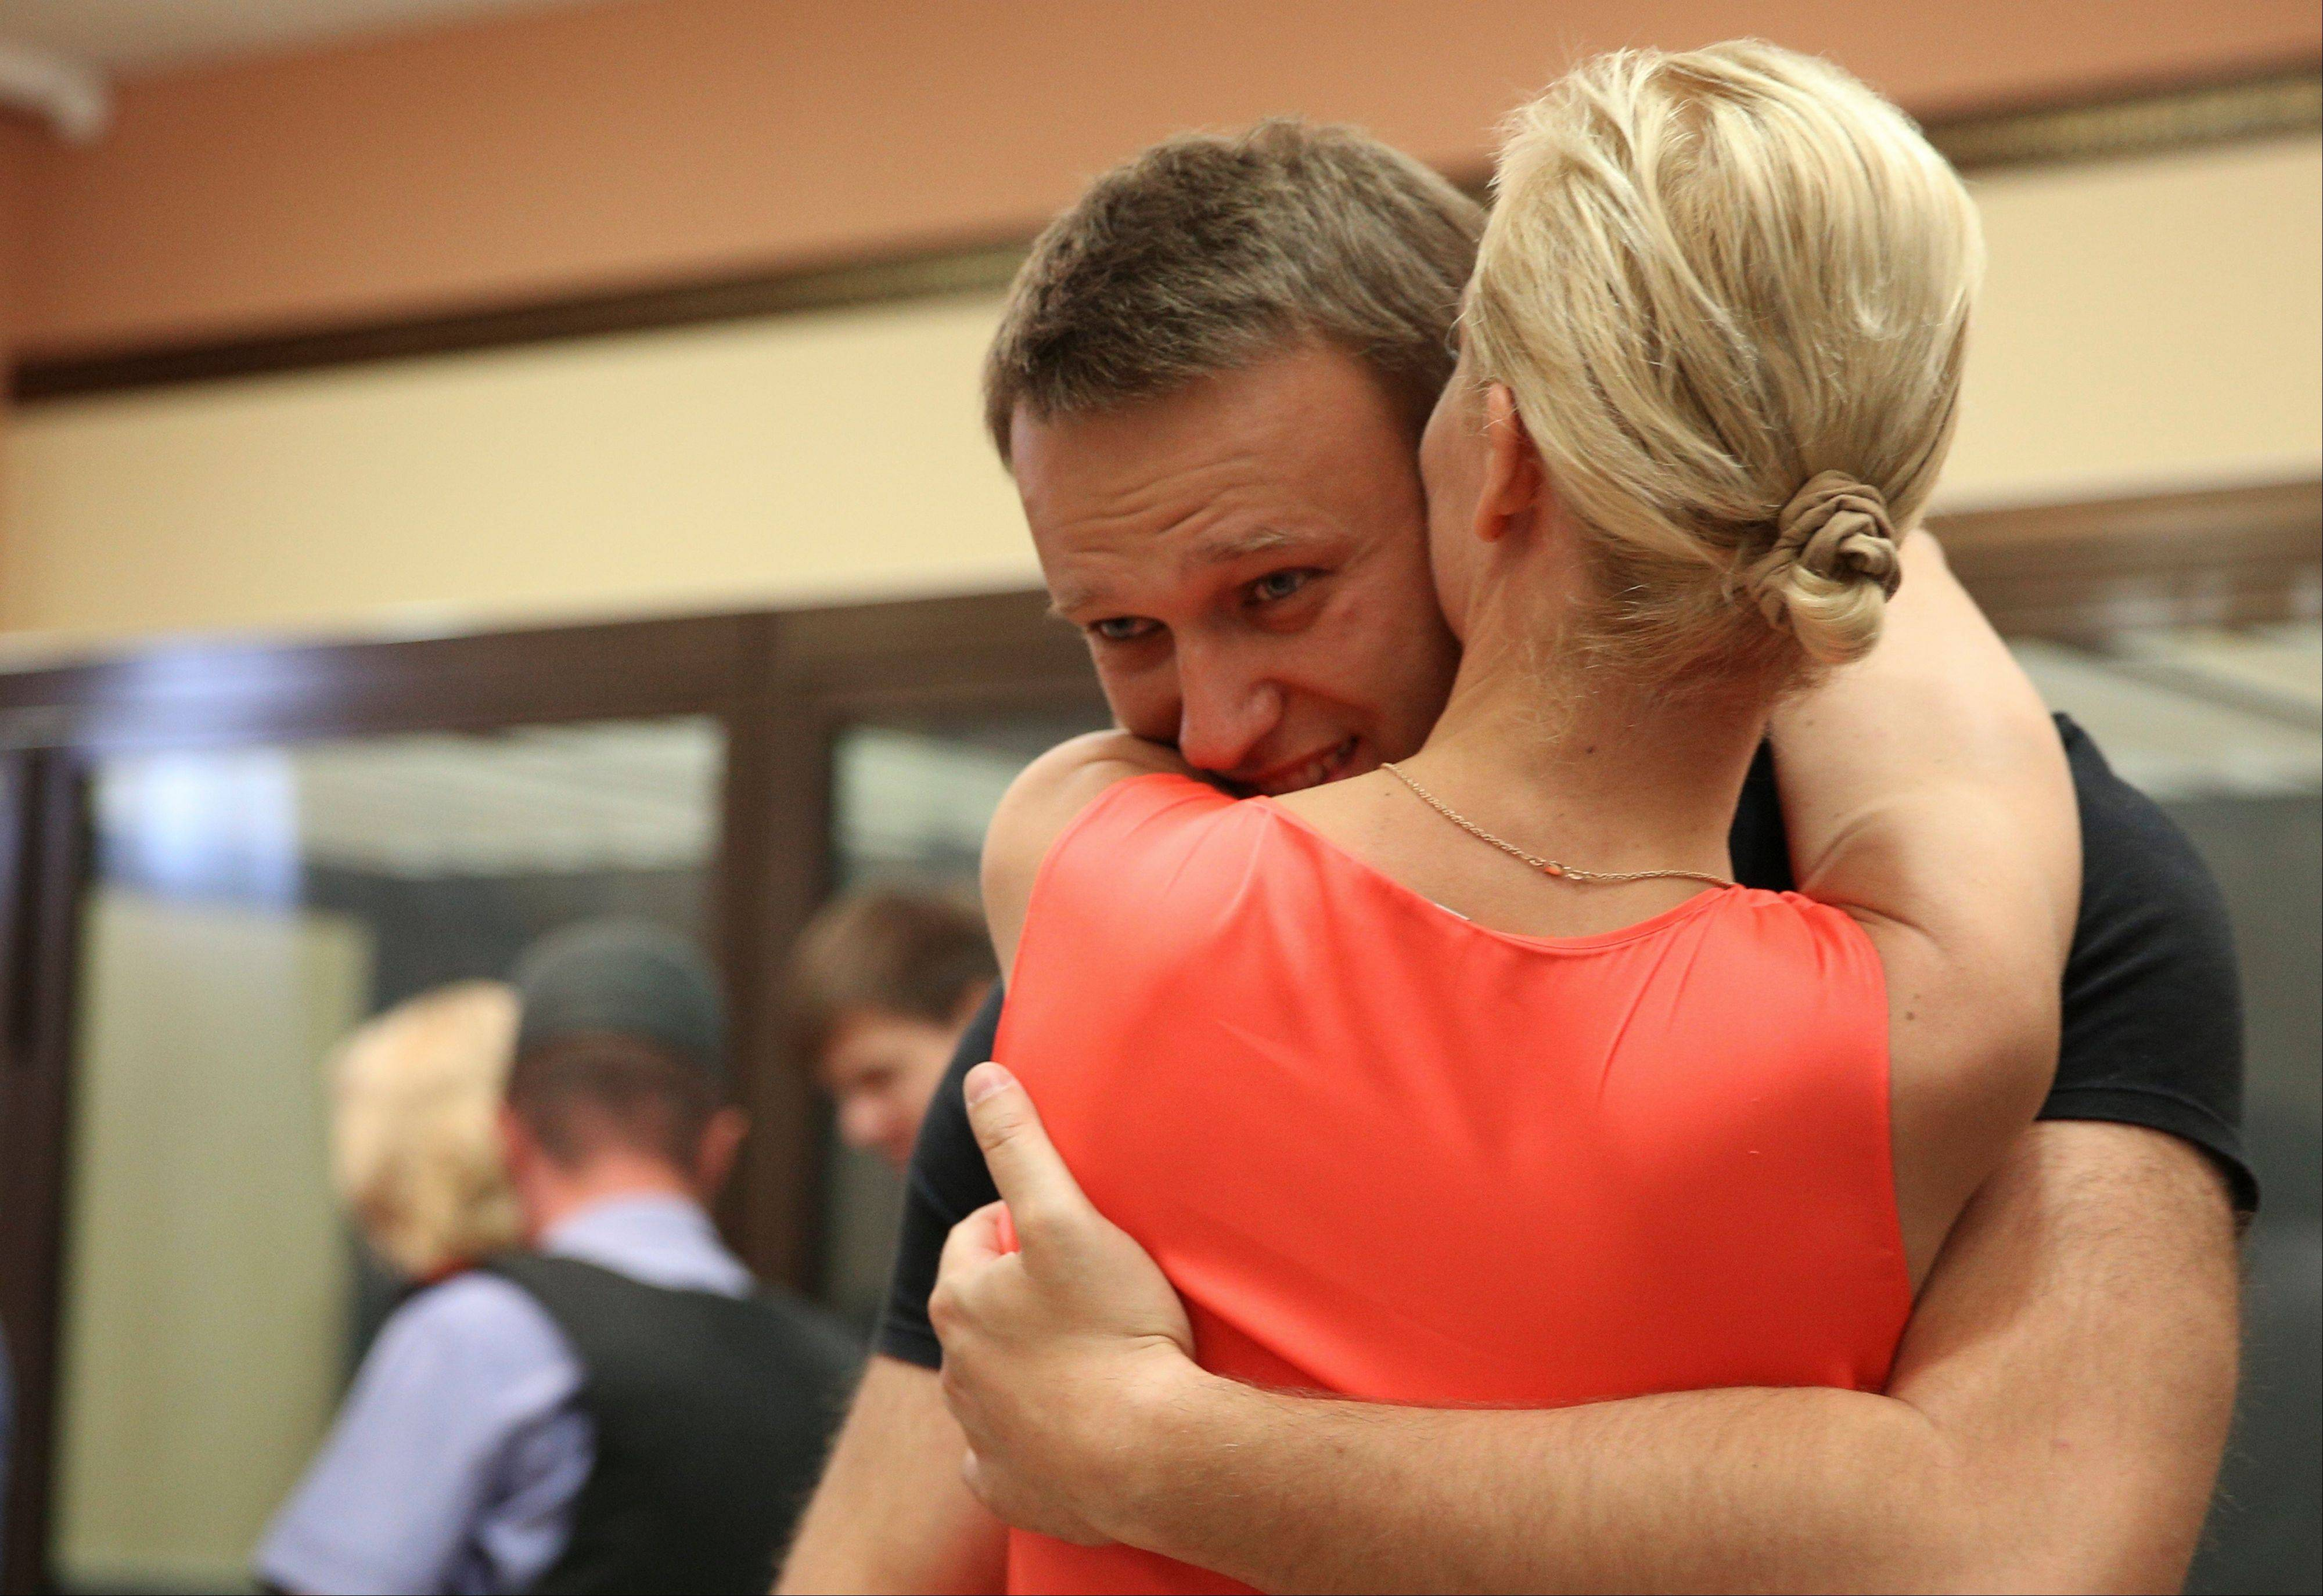 Russian opposition leader Alexei Navalny, embraces his wife Yulia, as he was released in a courtroom in Kirov, Russia Friday, July 19, 2013. A Russian court on Friday released opposition leader Alexei Navalny from custody less than 24 hours after he was convicted of embezzlement and sentenced to five years in prison. The release came after a surprise request by prosecutors, who said that because Navalny is a candidate in this fall�s Moscow mayoral race keeping him in custody would deny him his right to seek election.